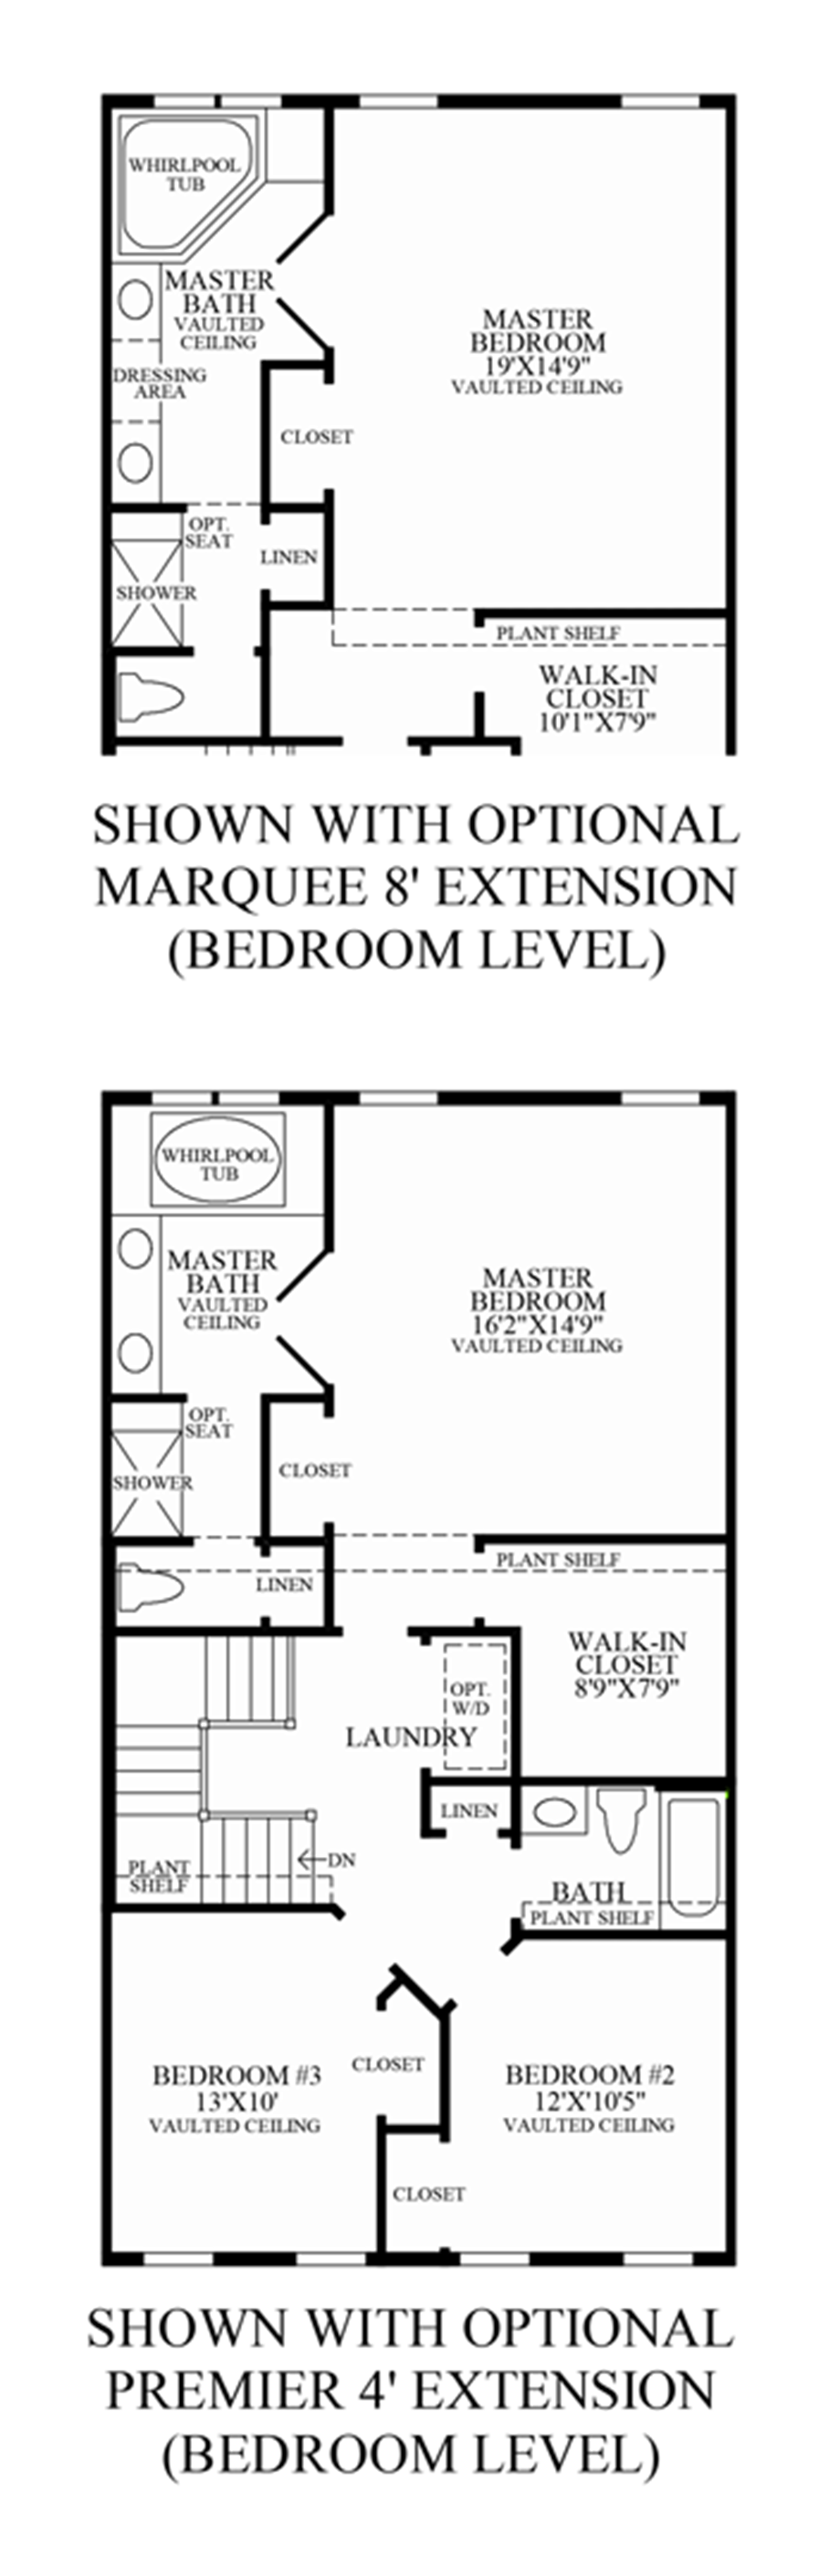 Optional Extensions Bedroom Level Floor Plan